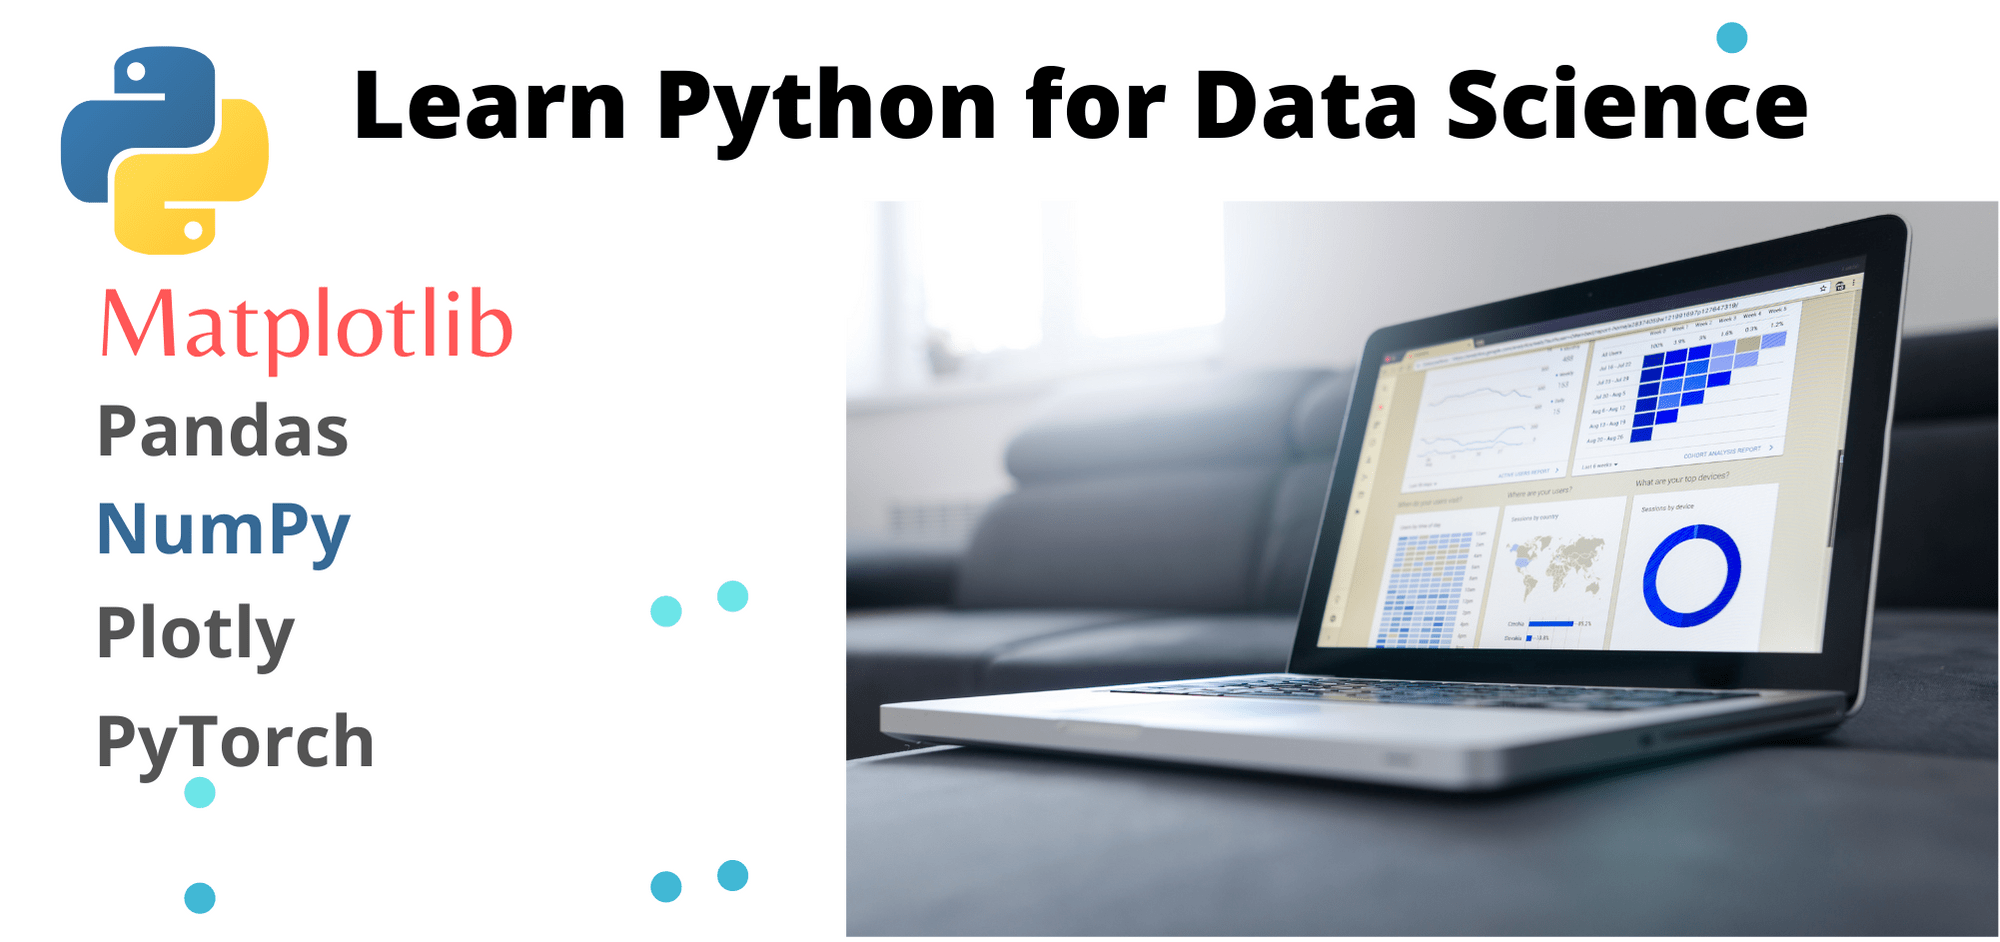 Learn Python to Get into Data Science Jobs